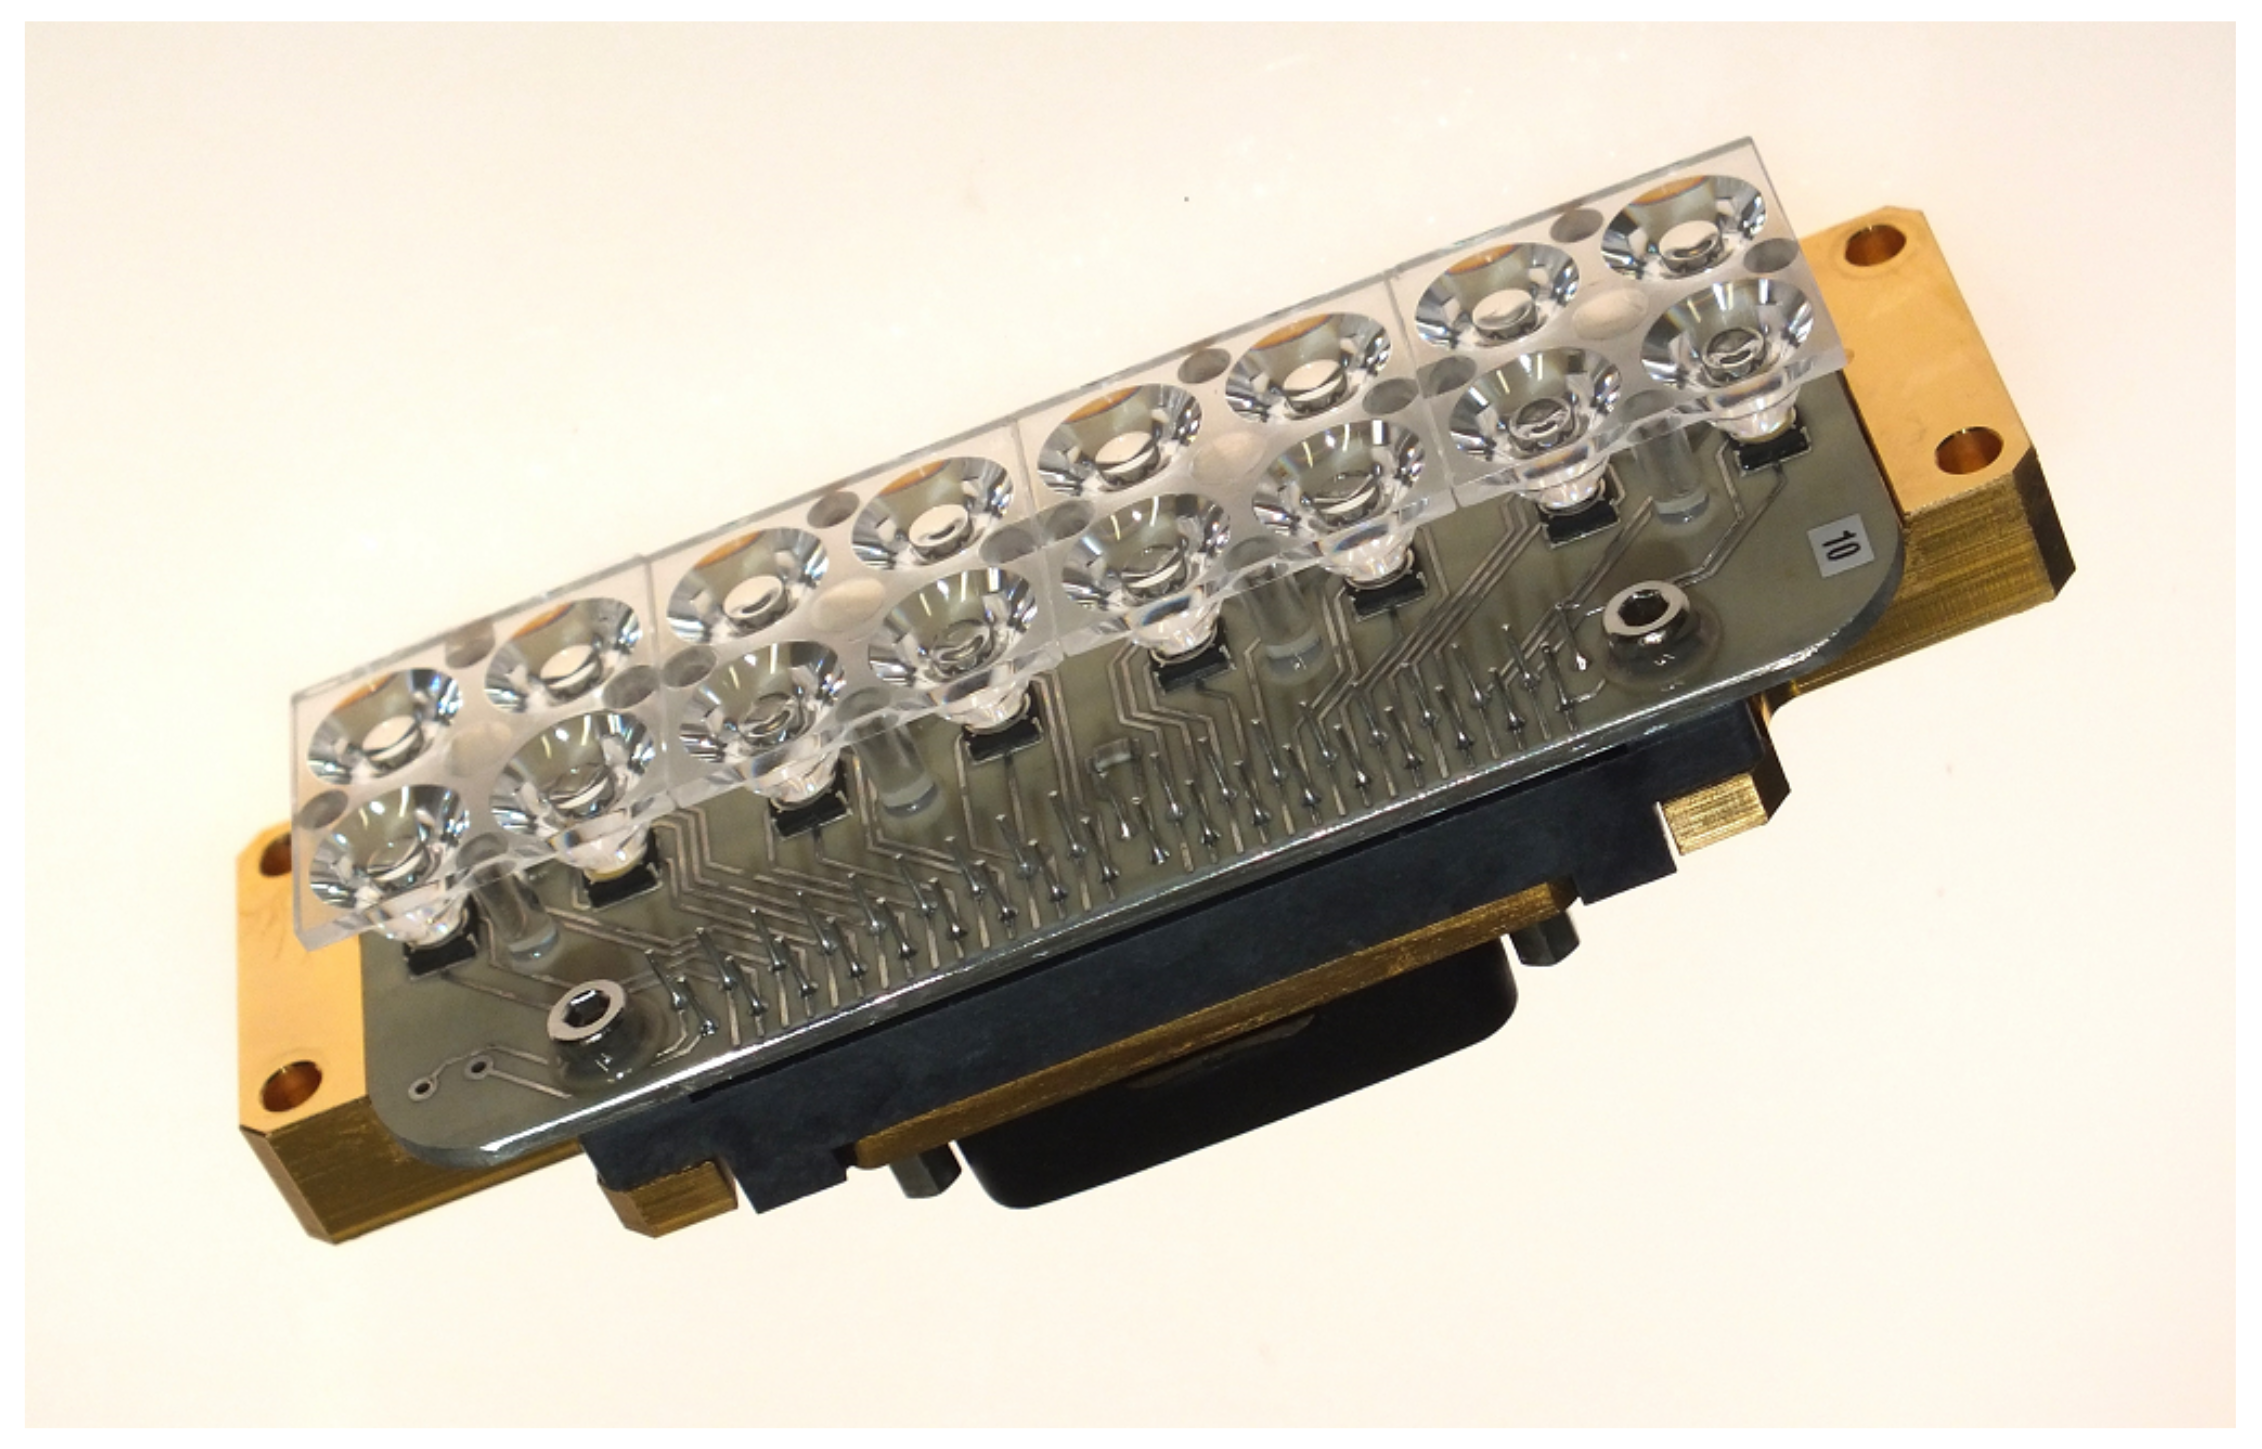 Sensors | Free Full-Text | The Instrument Design of the DLR